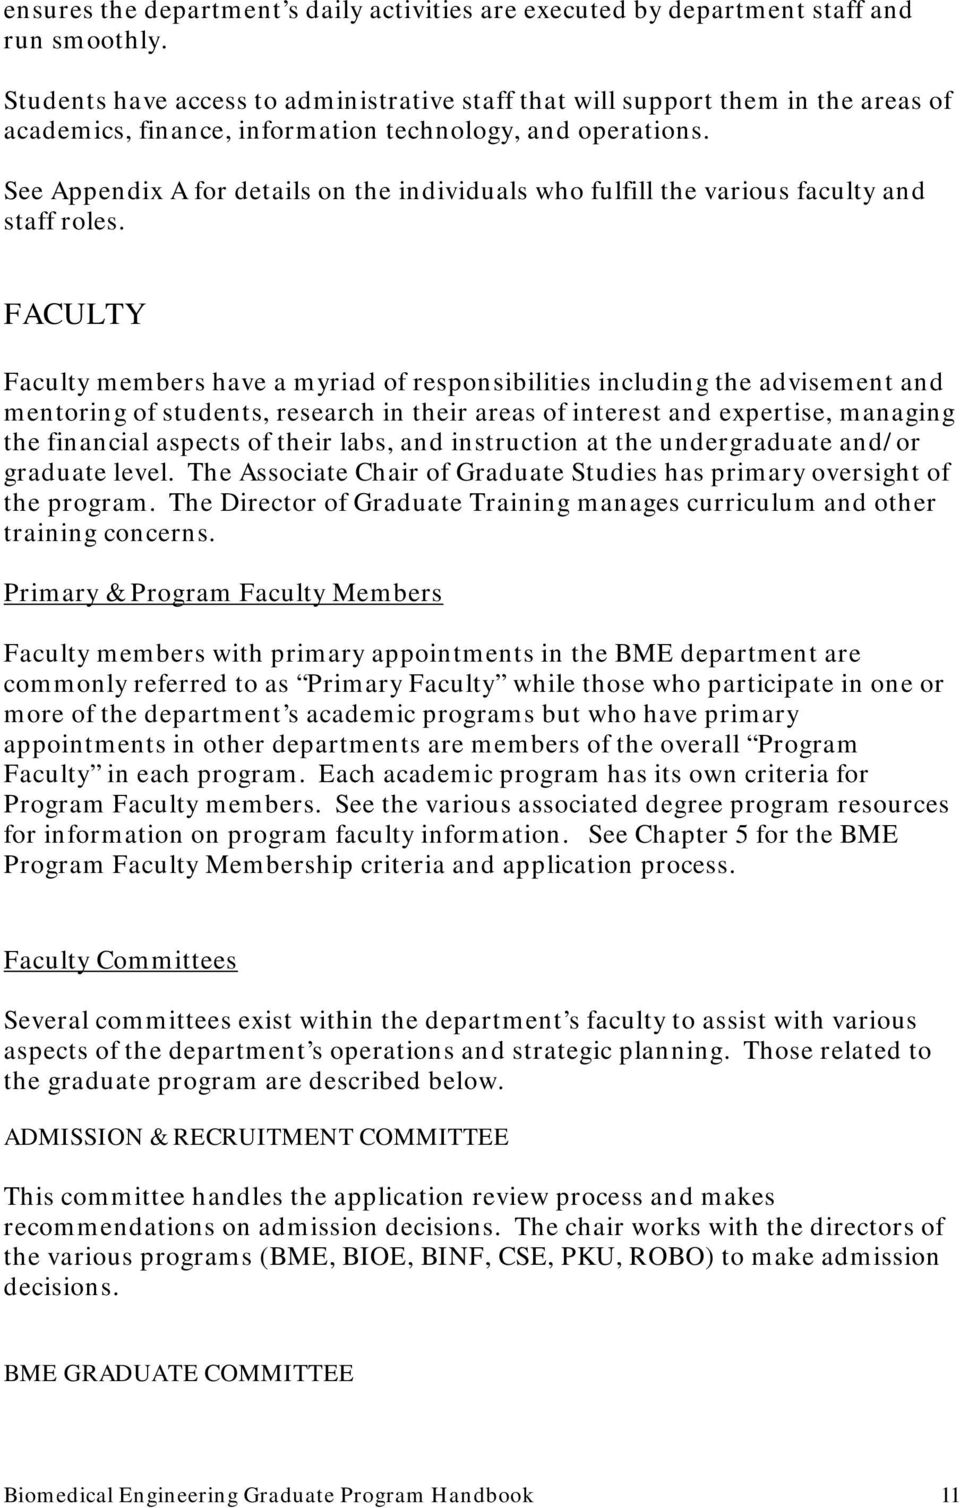 See Appendix A for details on the individuals who fulfill the various faculty and staff roles.